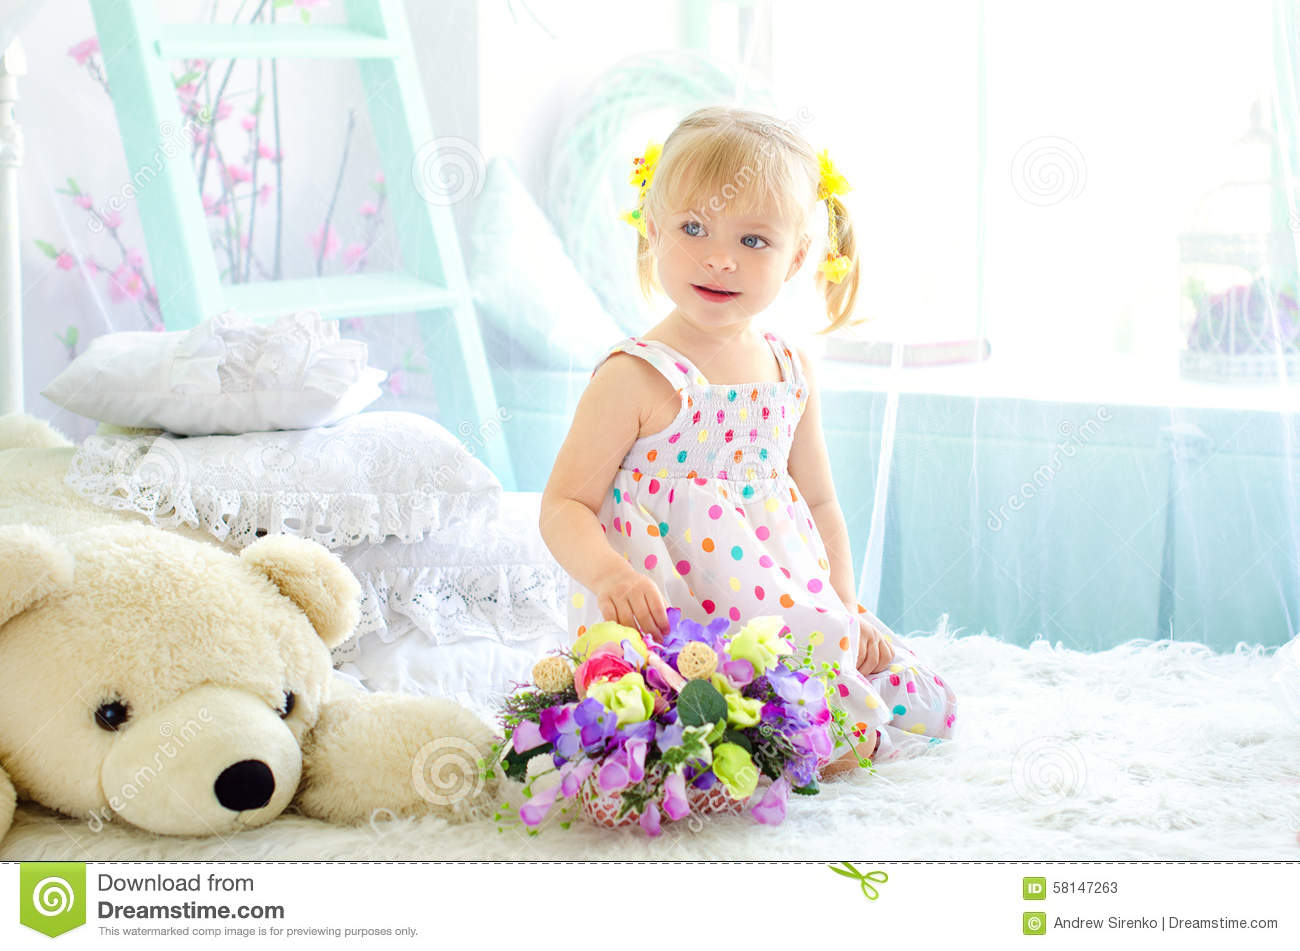 Little Girl On Bed With Flowers And Big Teddy Bear Stock